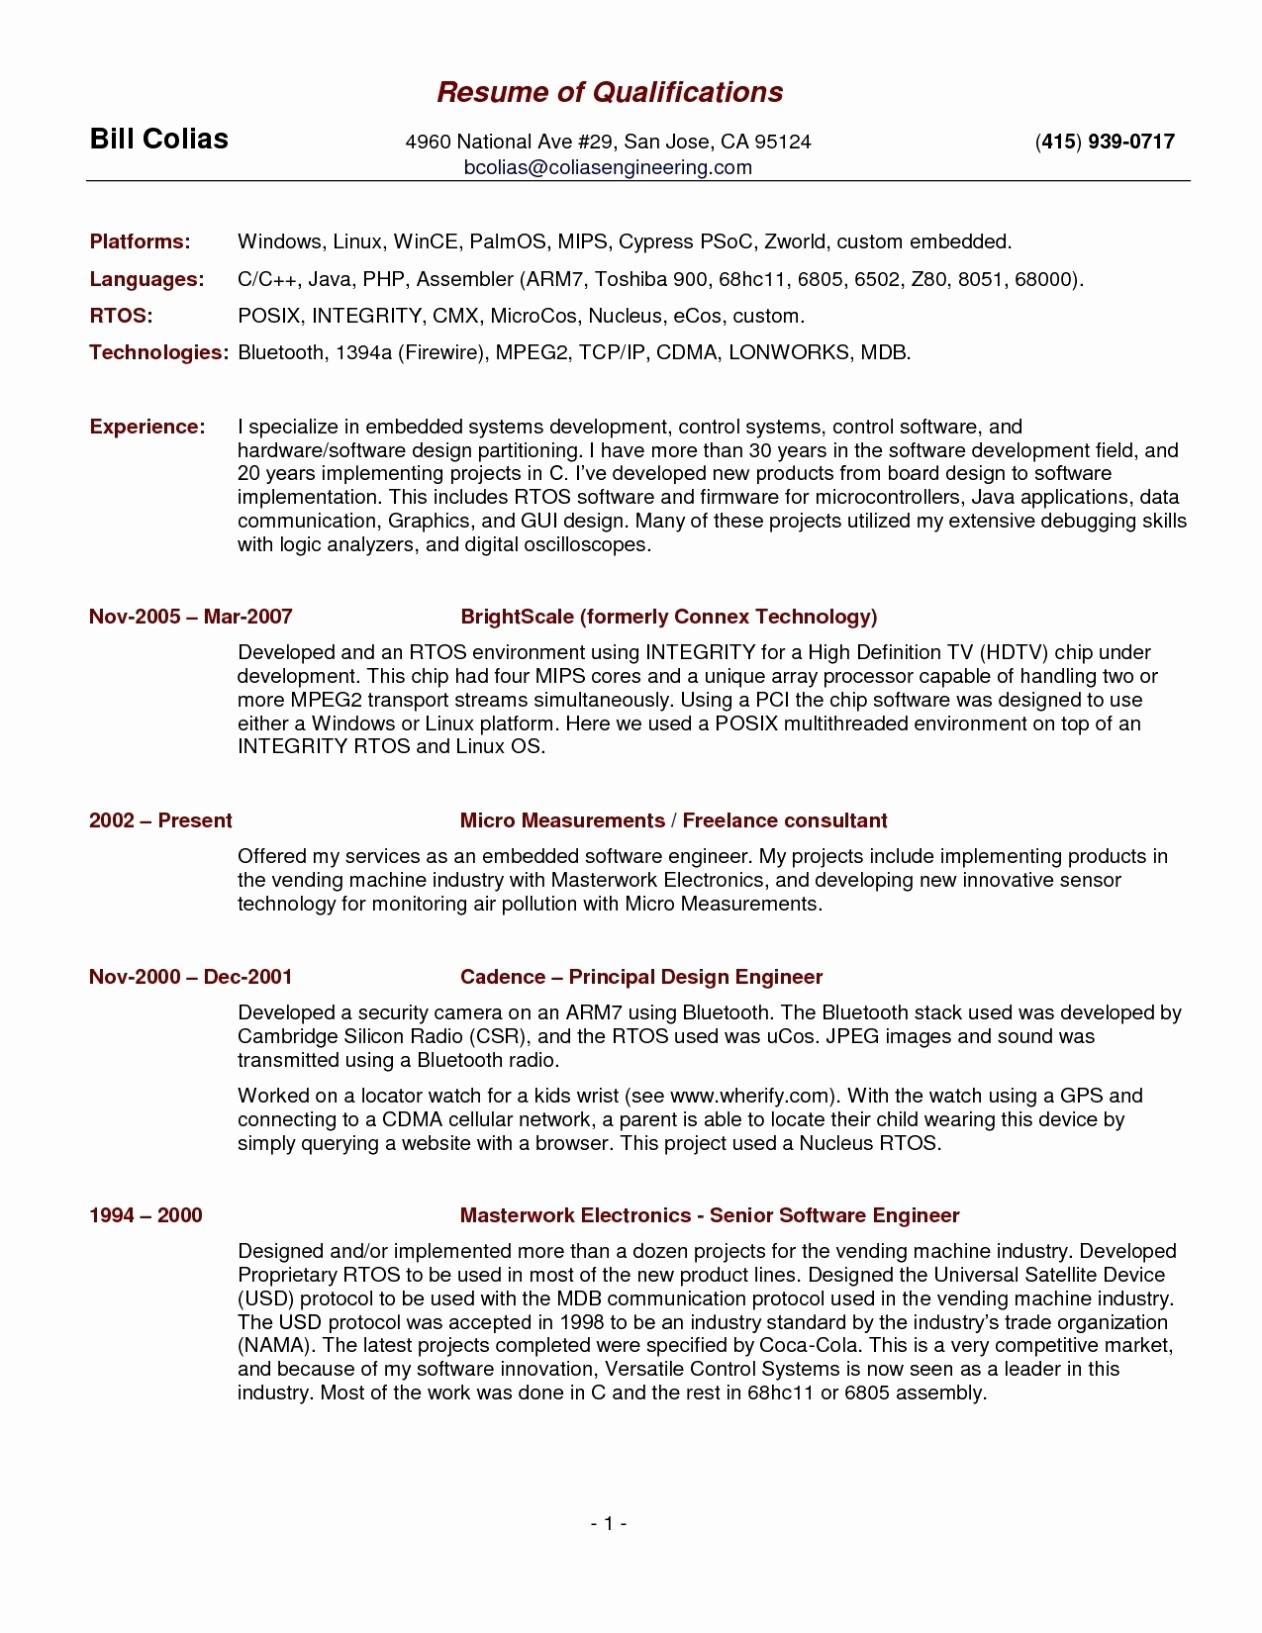 Help Desk Resume Template - 15 Awesome From the Desk Template Land Of Template